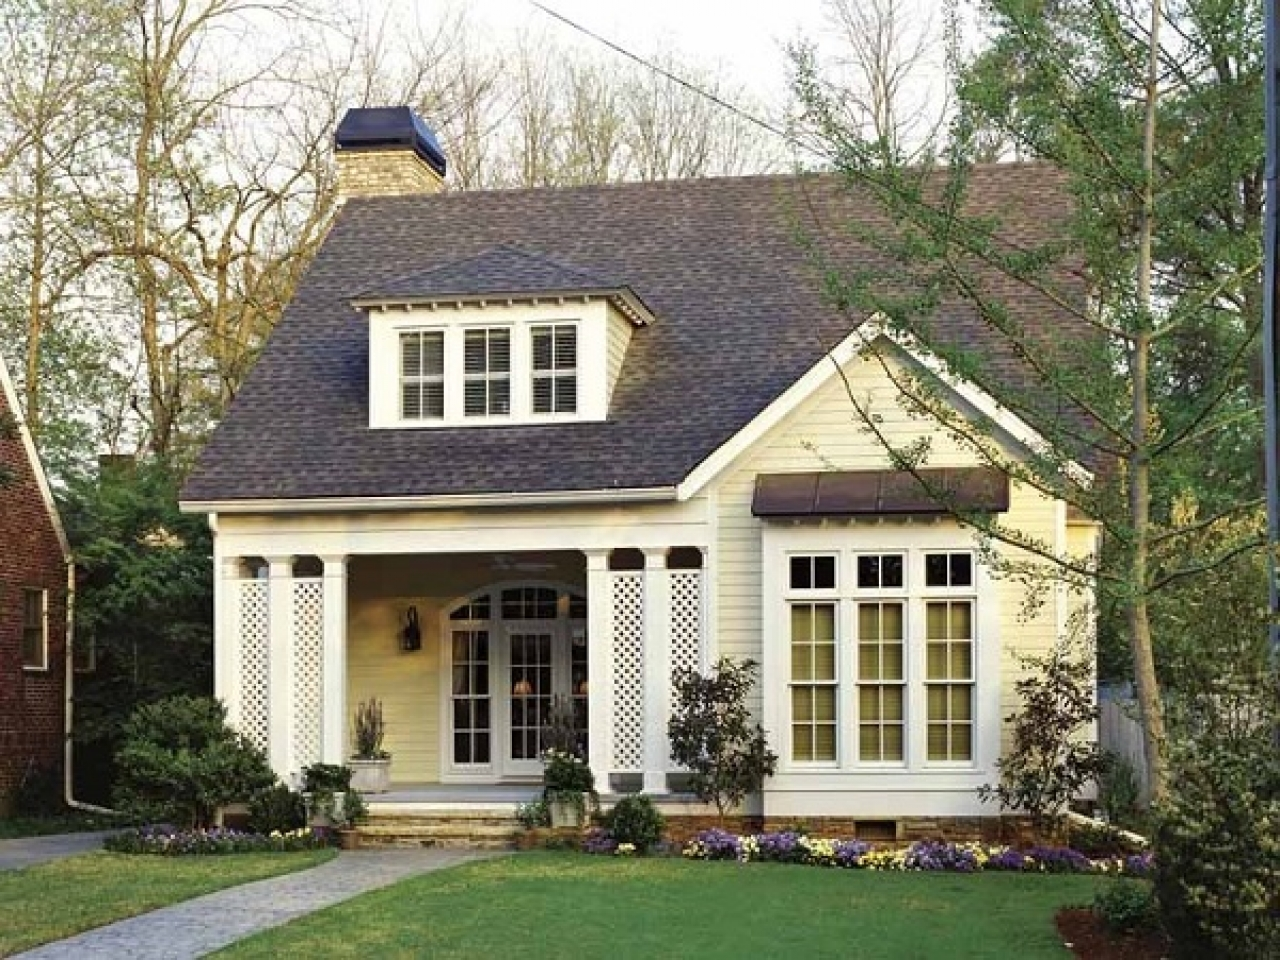 Small cottage house plans small country house plans small for House plans for small houses cottage style